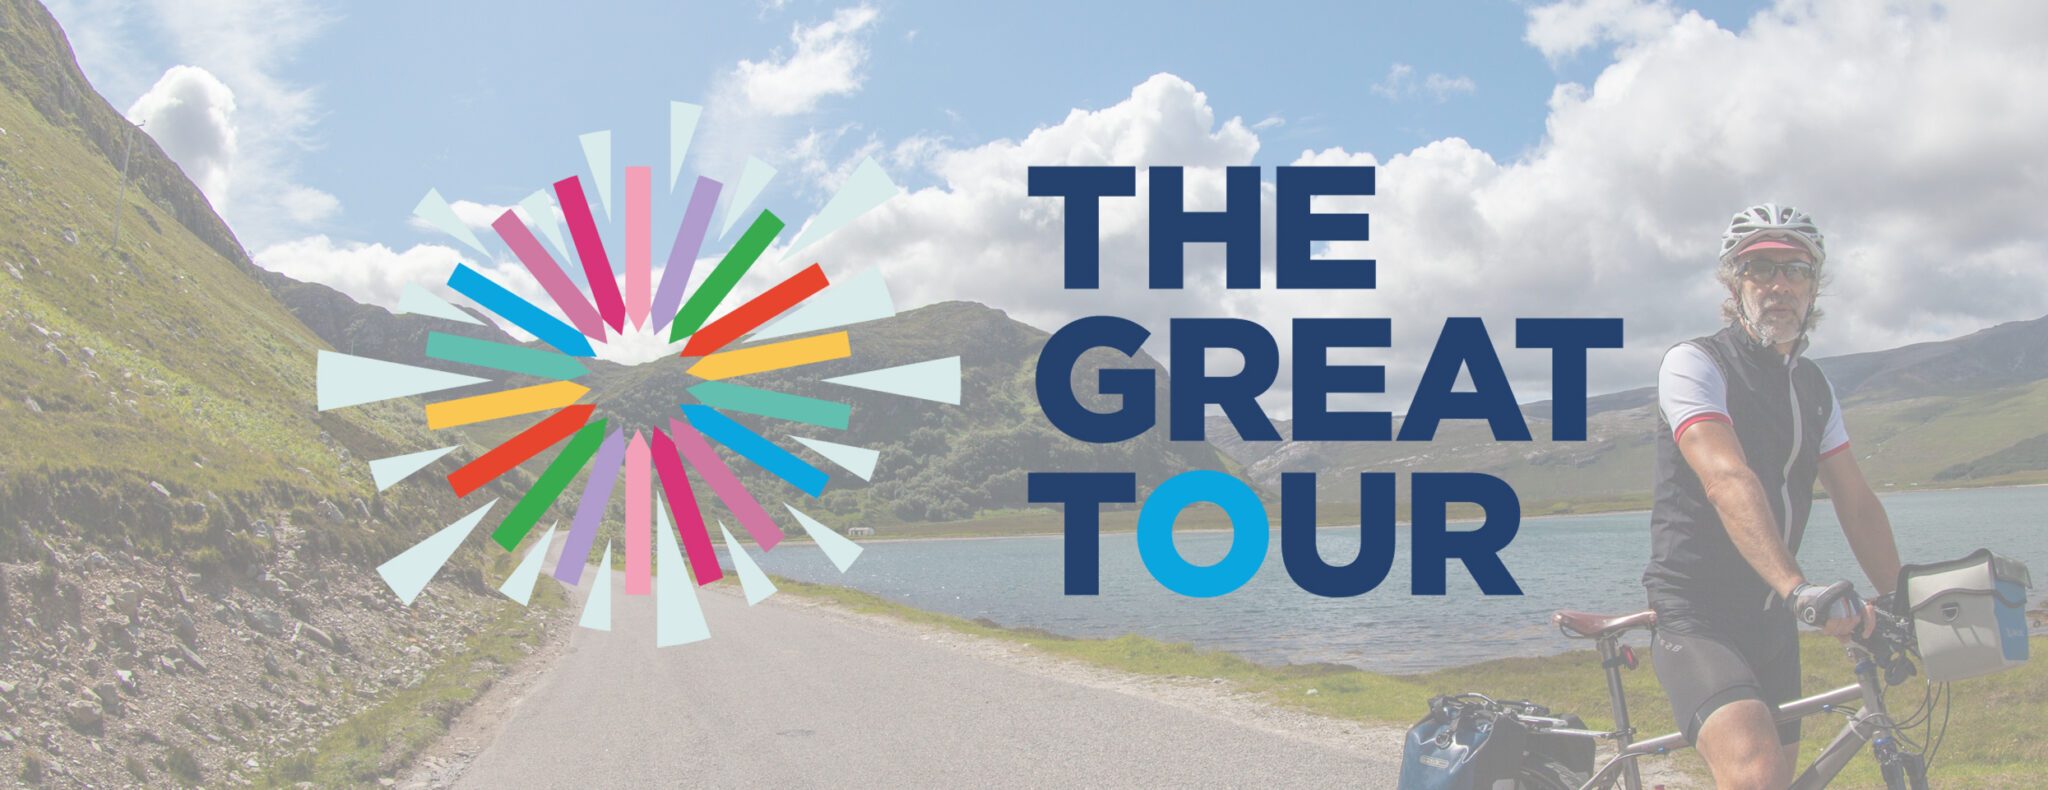 The Great Tour - Latest News